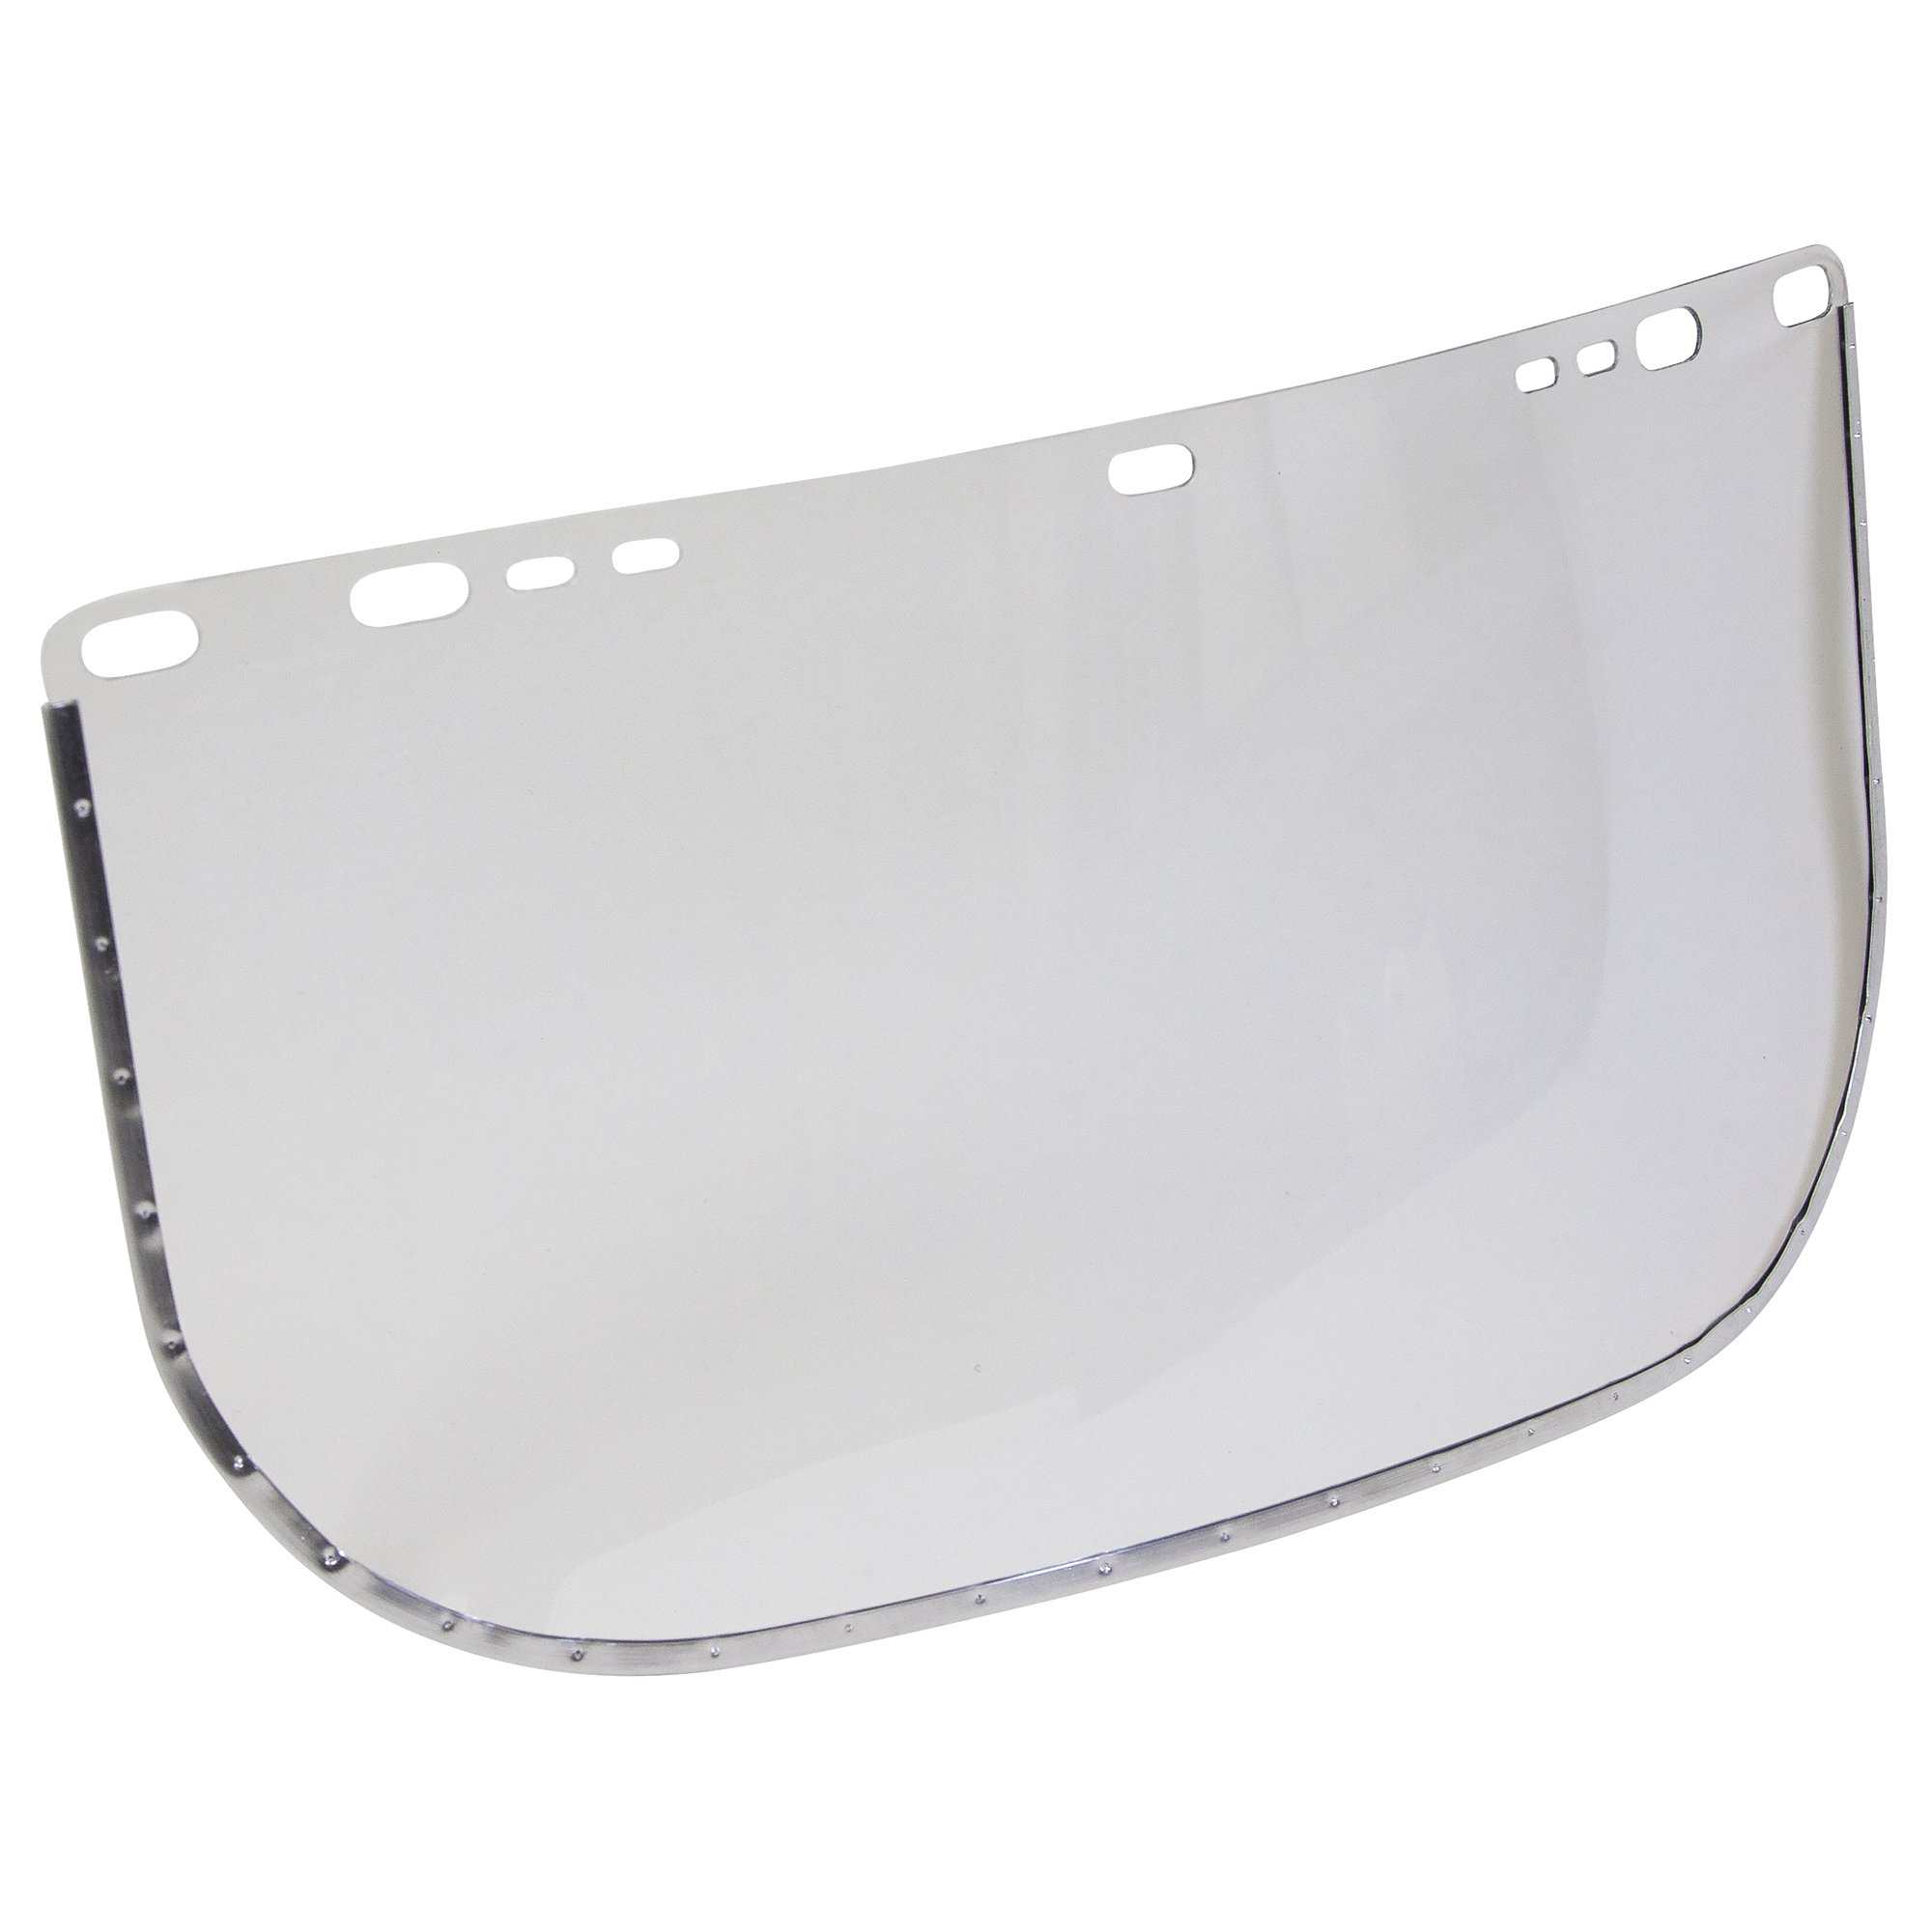 "Jackson Safety F30 Acetate Face Shield (29052), 8"" x 15.5"" Clear, Reusable Face Protection, 24 Shields/Case by Jackson Safety (Image #1)"